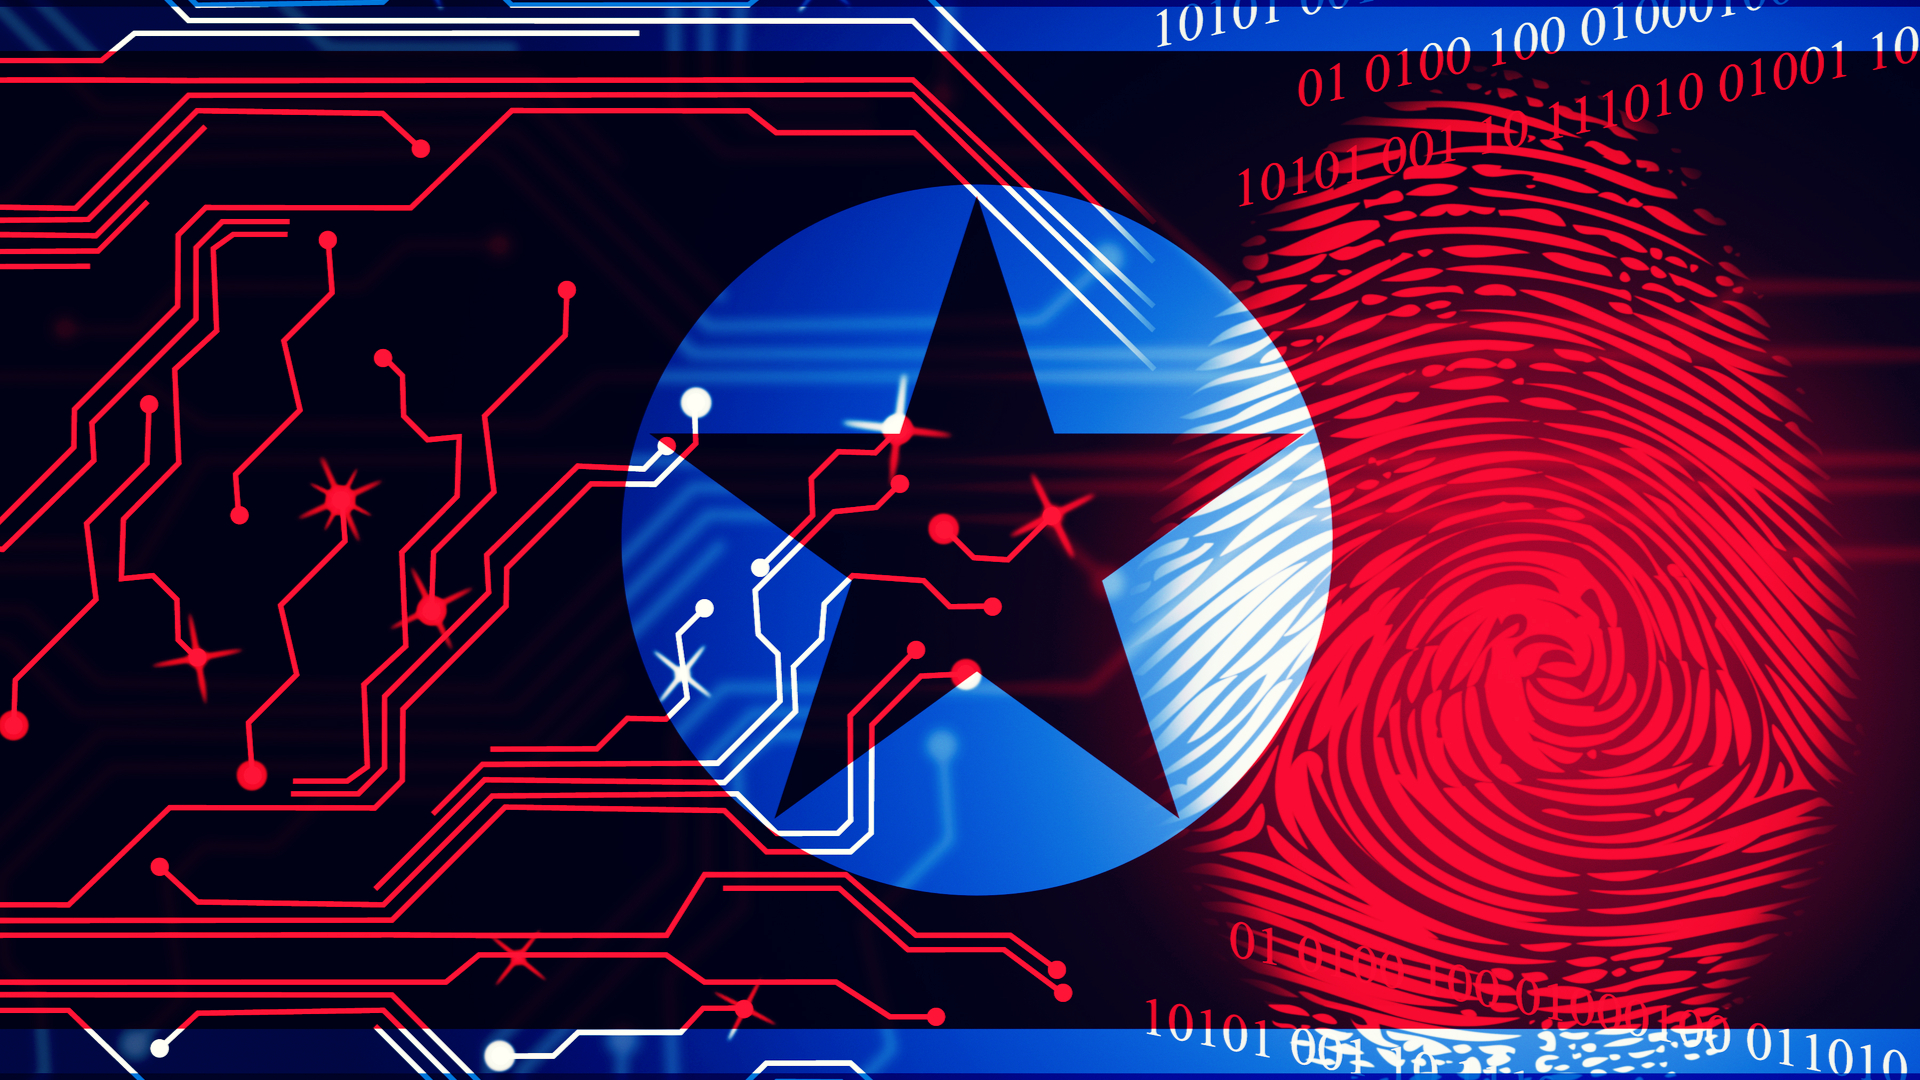 North Korean HIDDEN COBRA  - Lazarus Group - cybercrime group Reconnaissance General Bureau Bureau121  cyberattacks